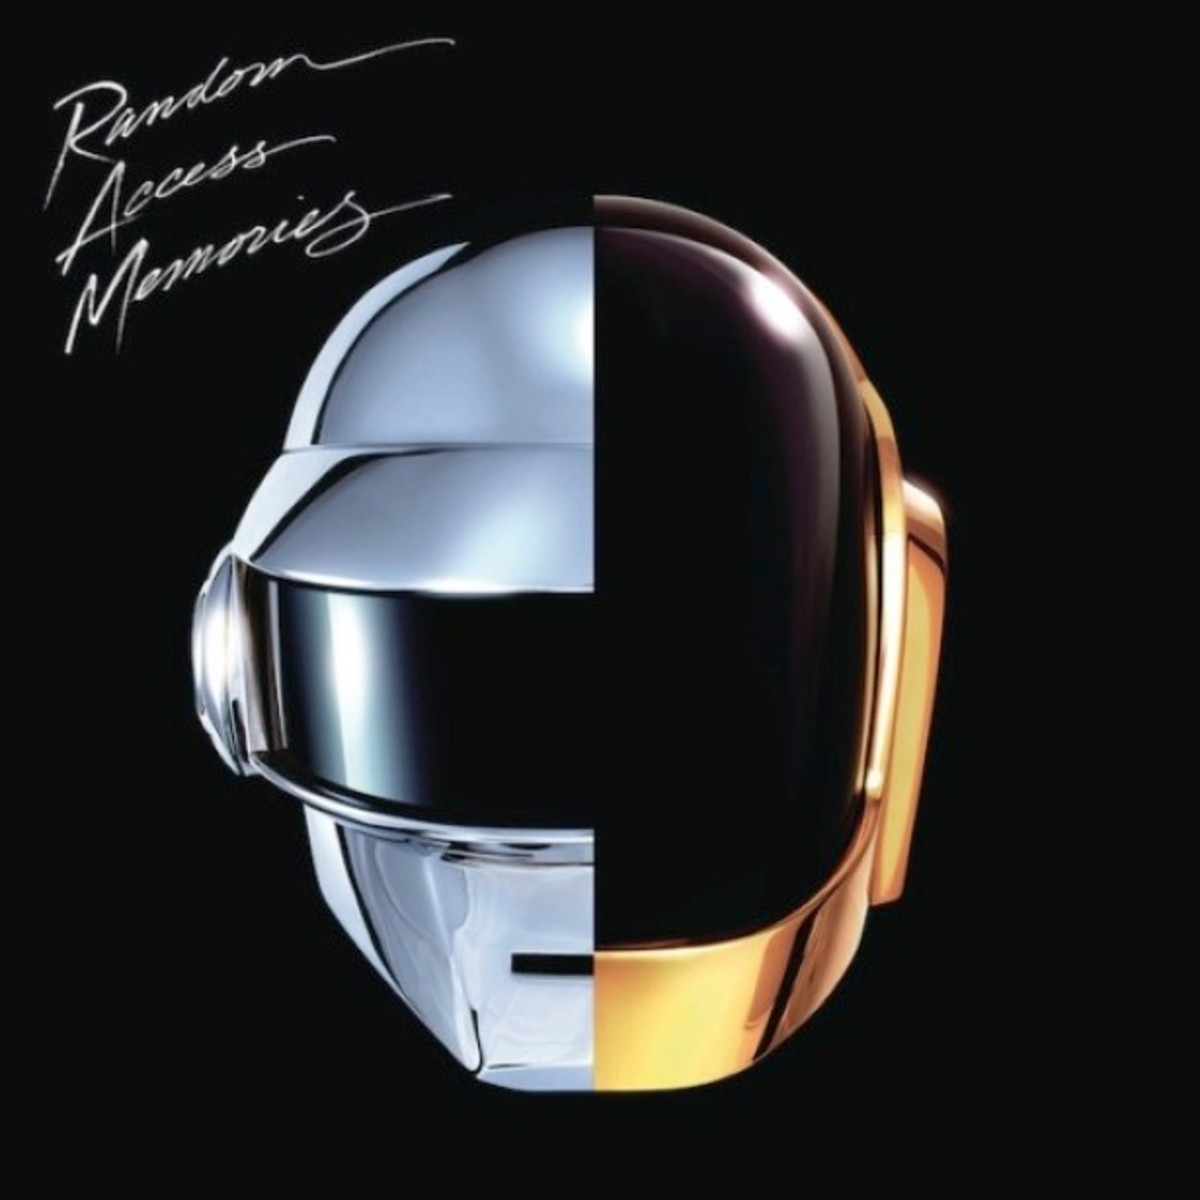 EDM Review: Daft Punk's Random Access Memories